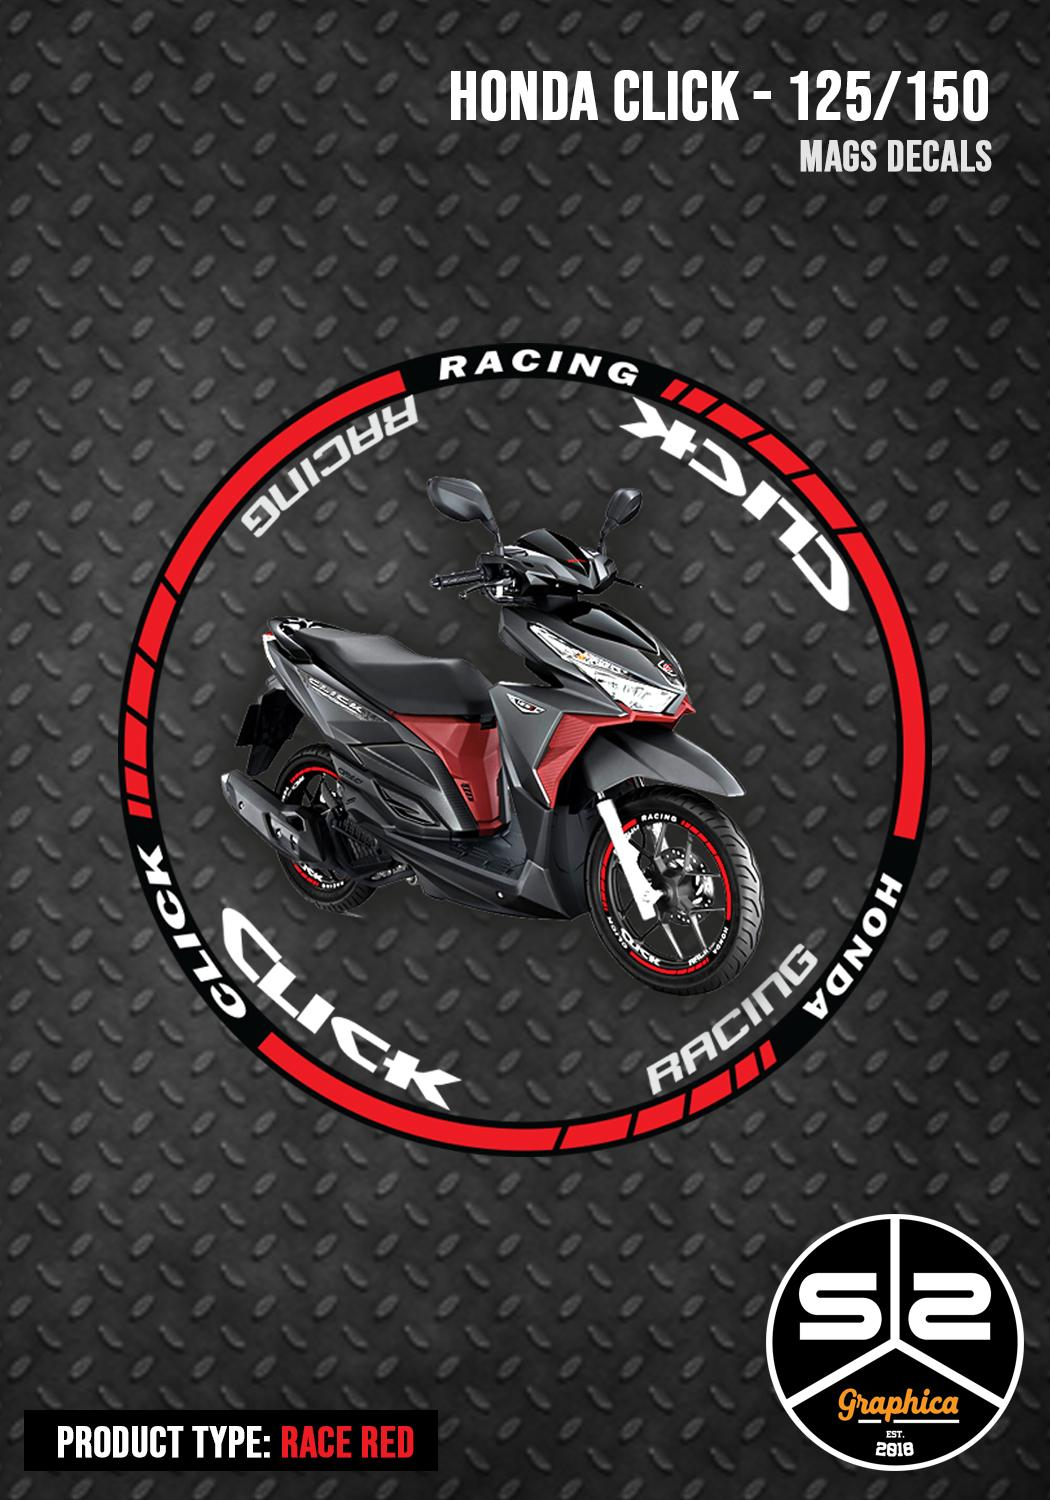 Mags decals honda click racing series red